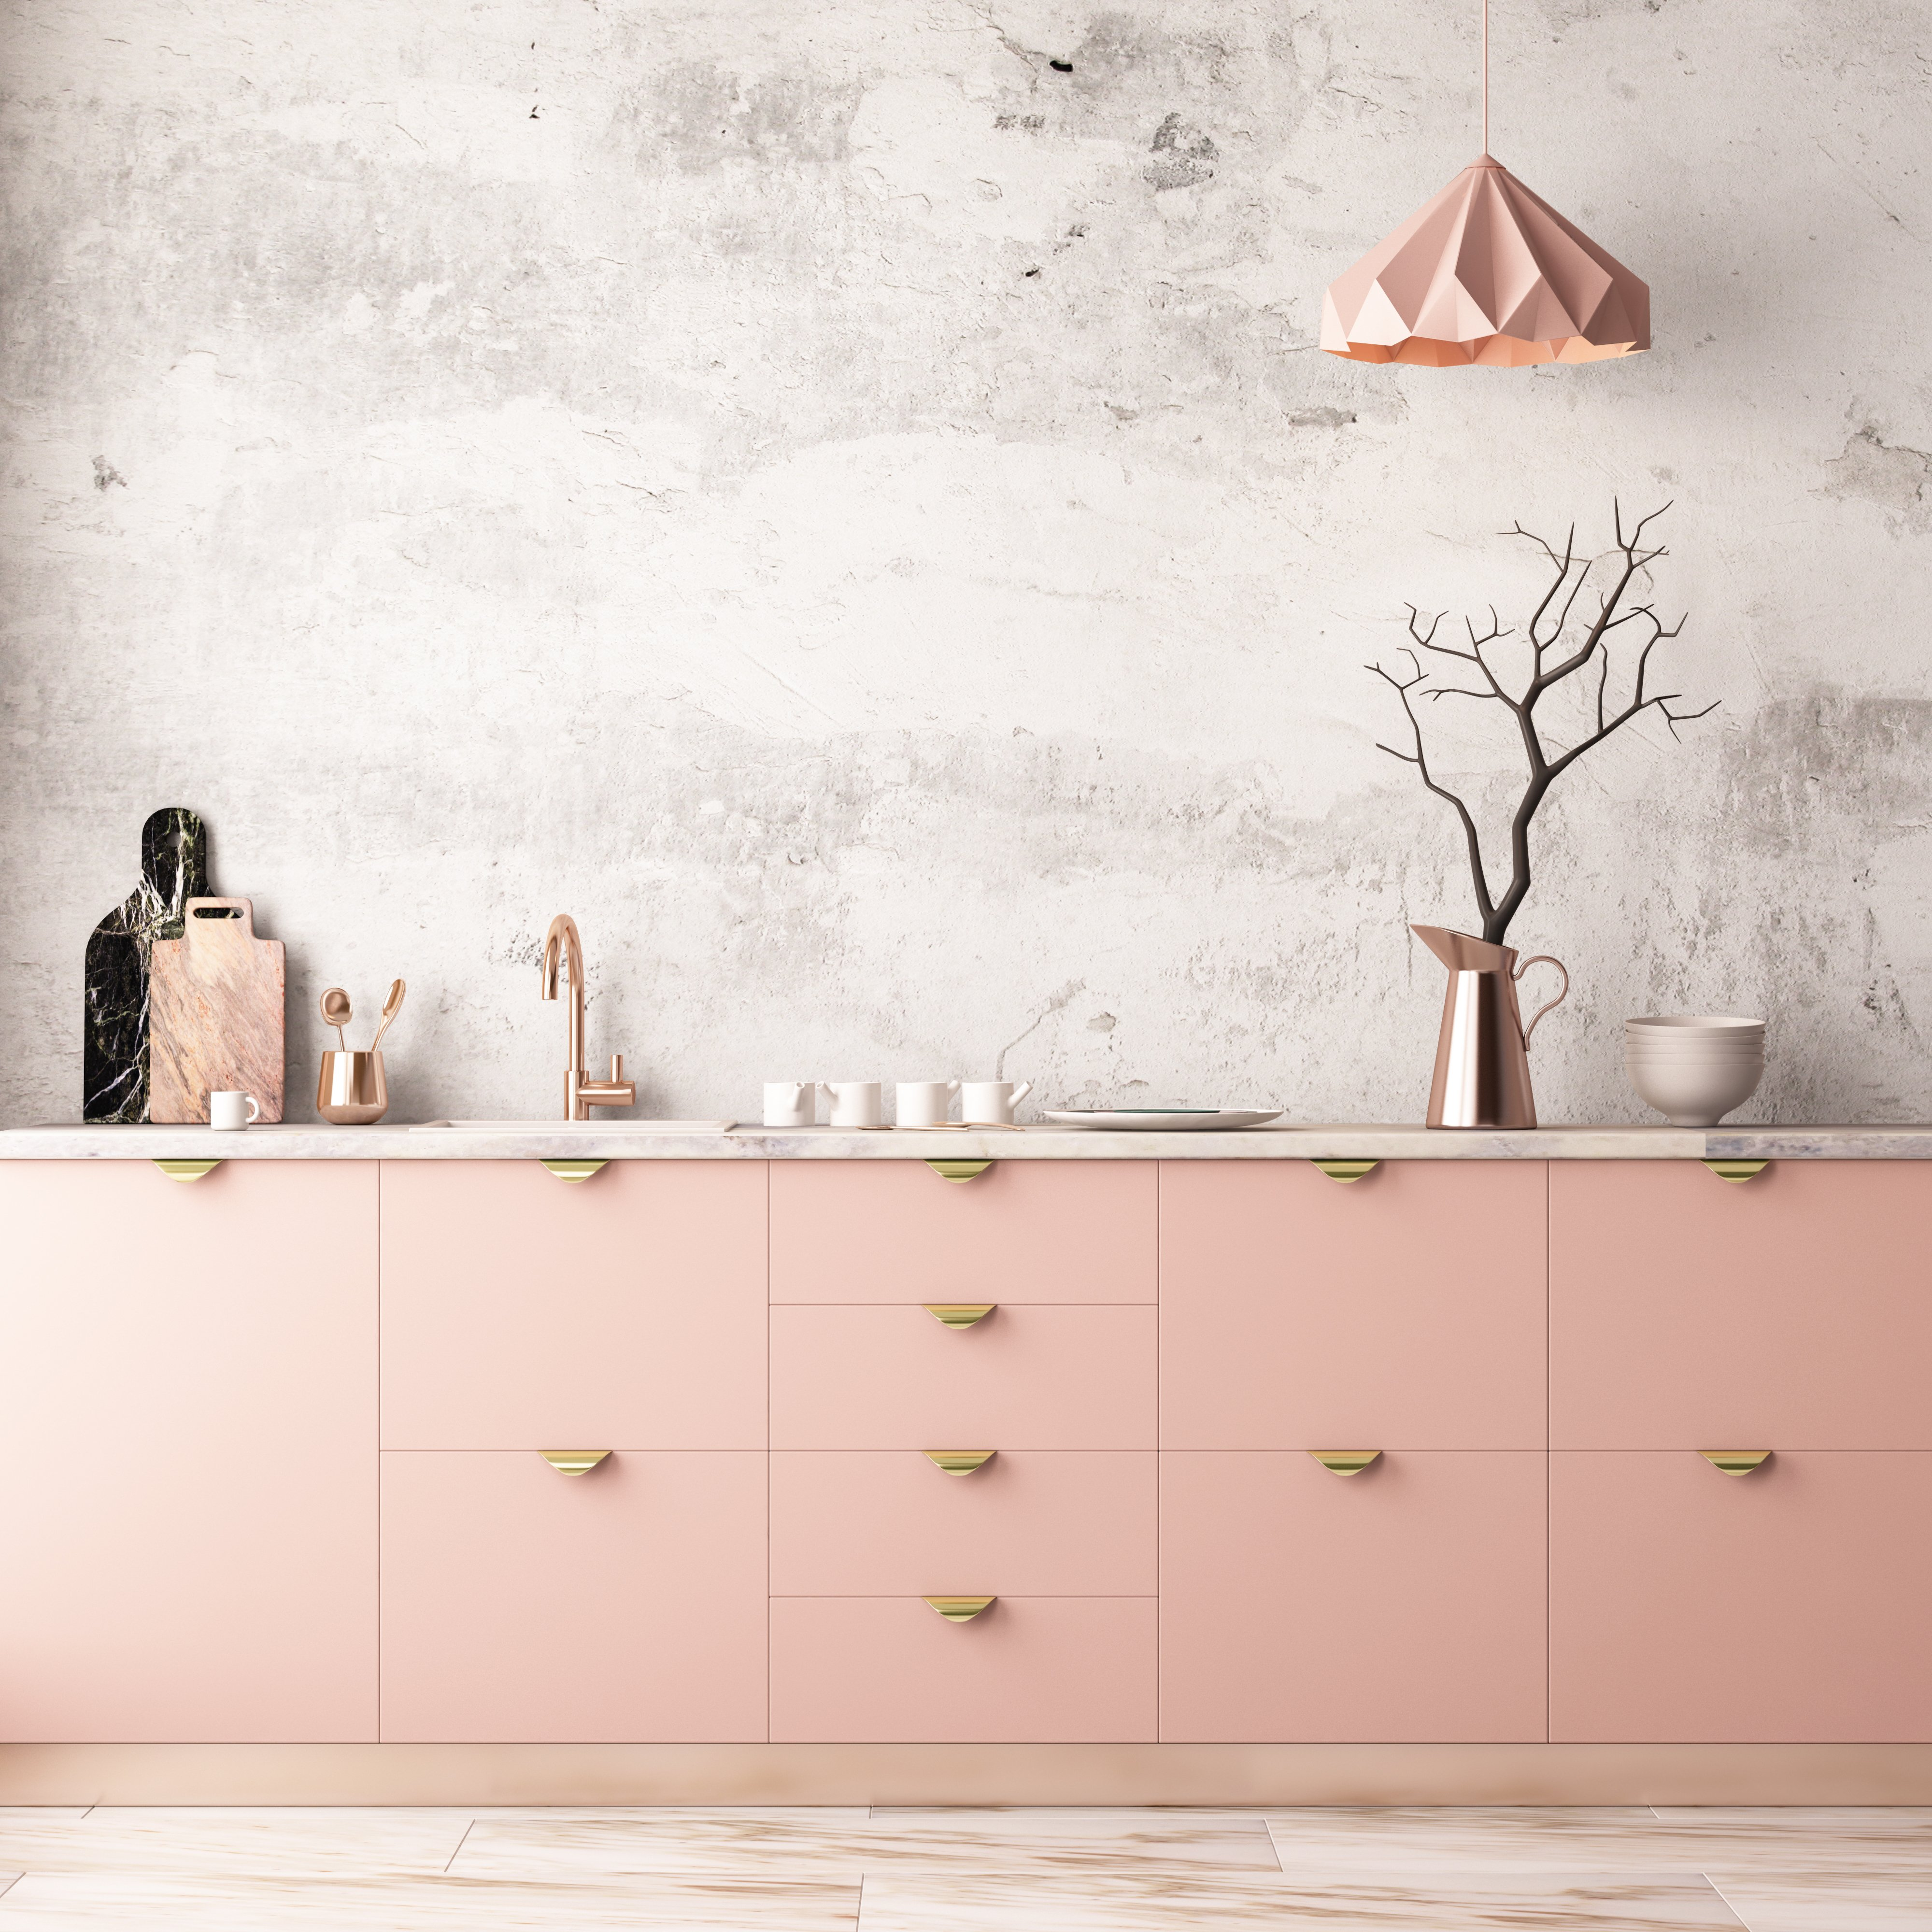 How To Choose The Right Laminate For Your Kitchen Cabinets Homelane Blog